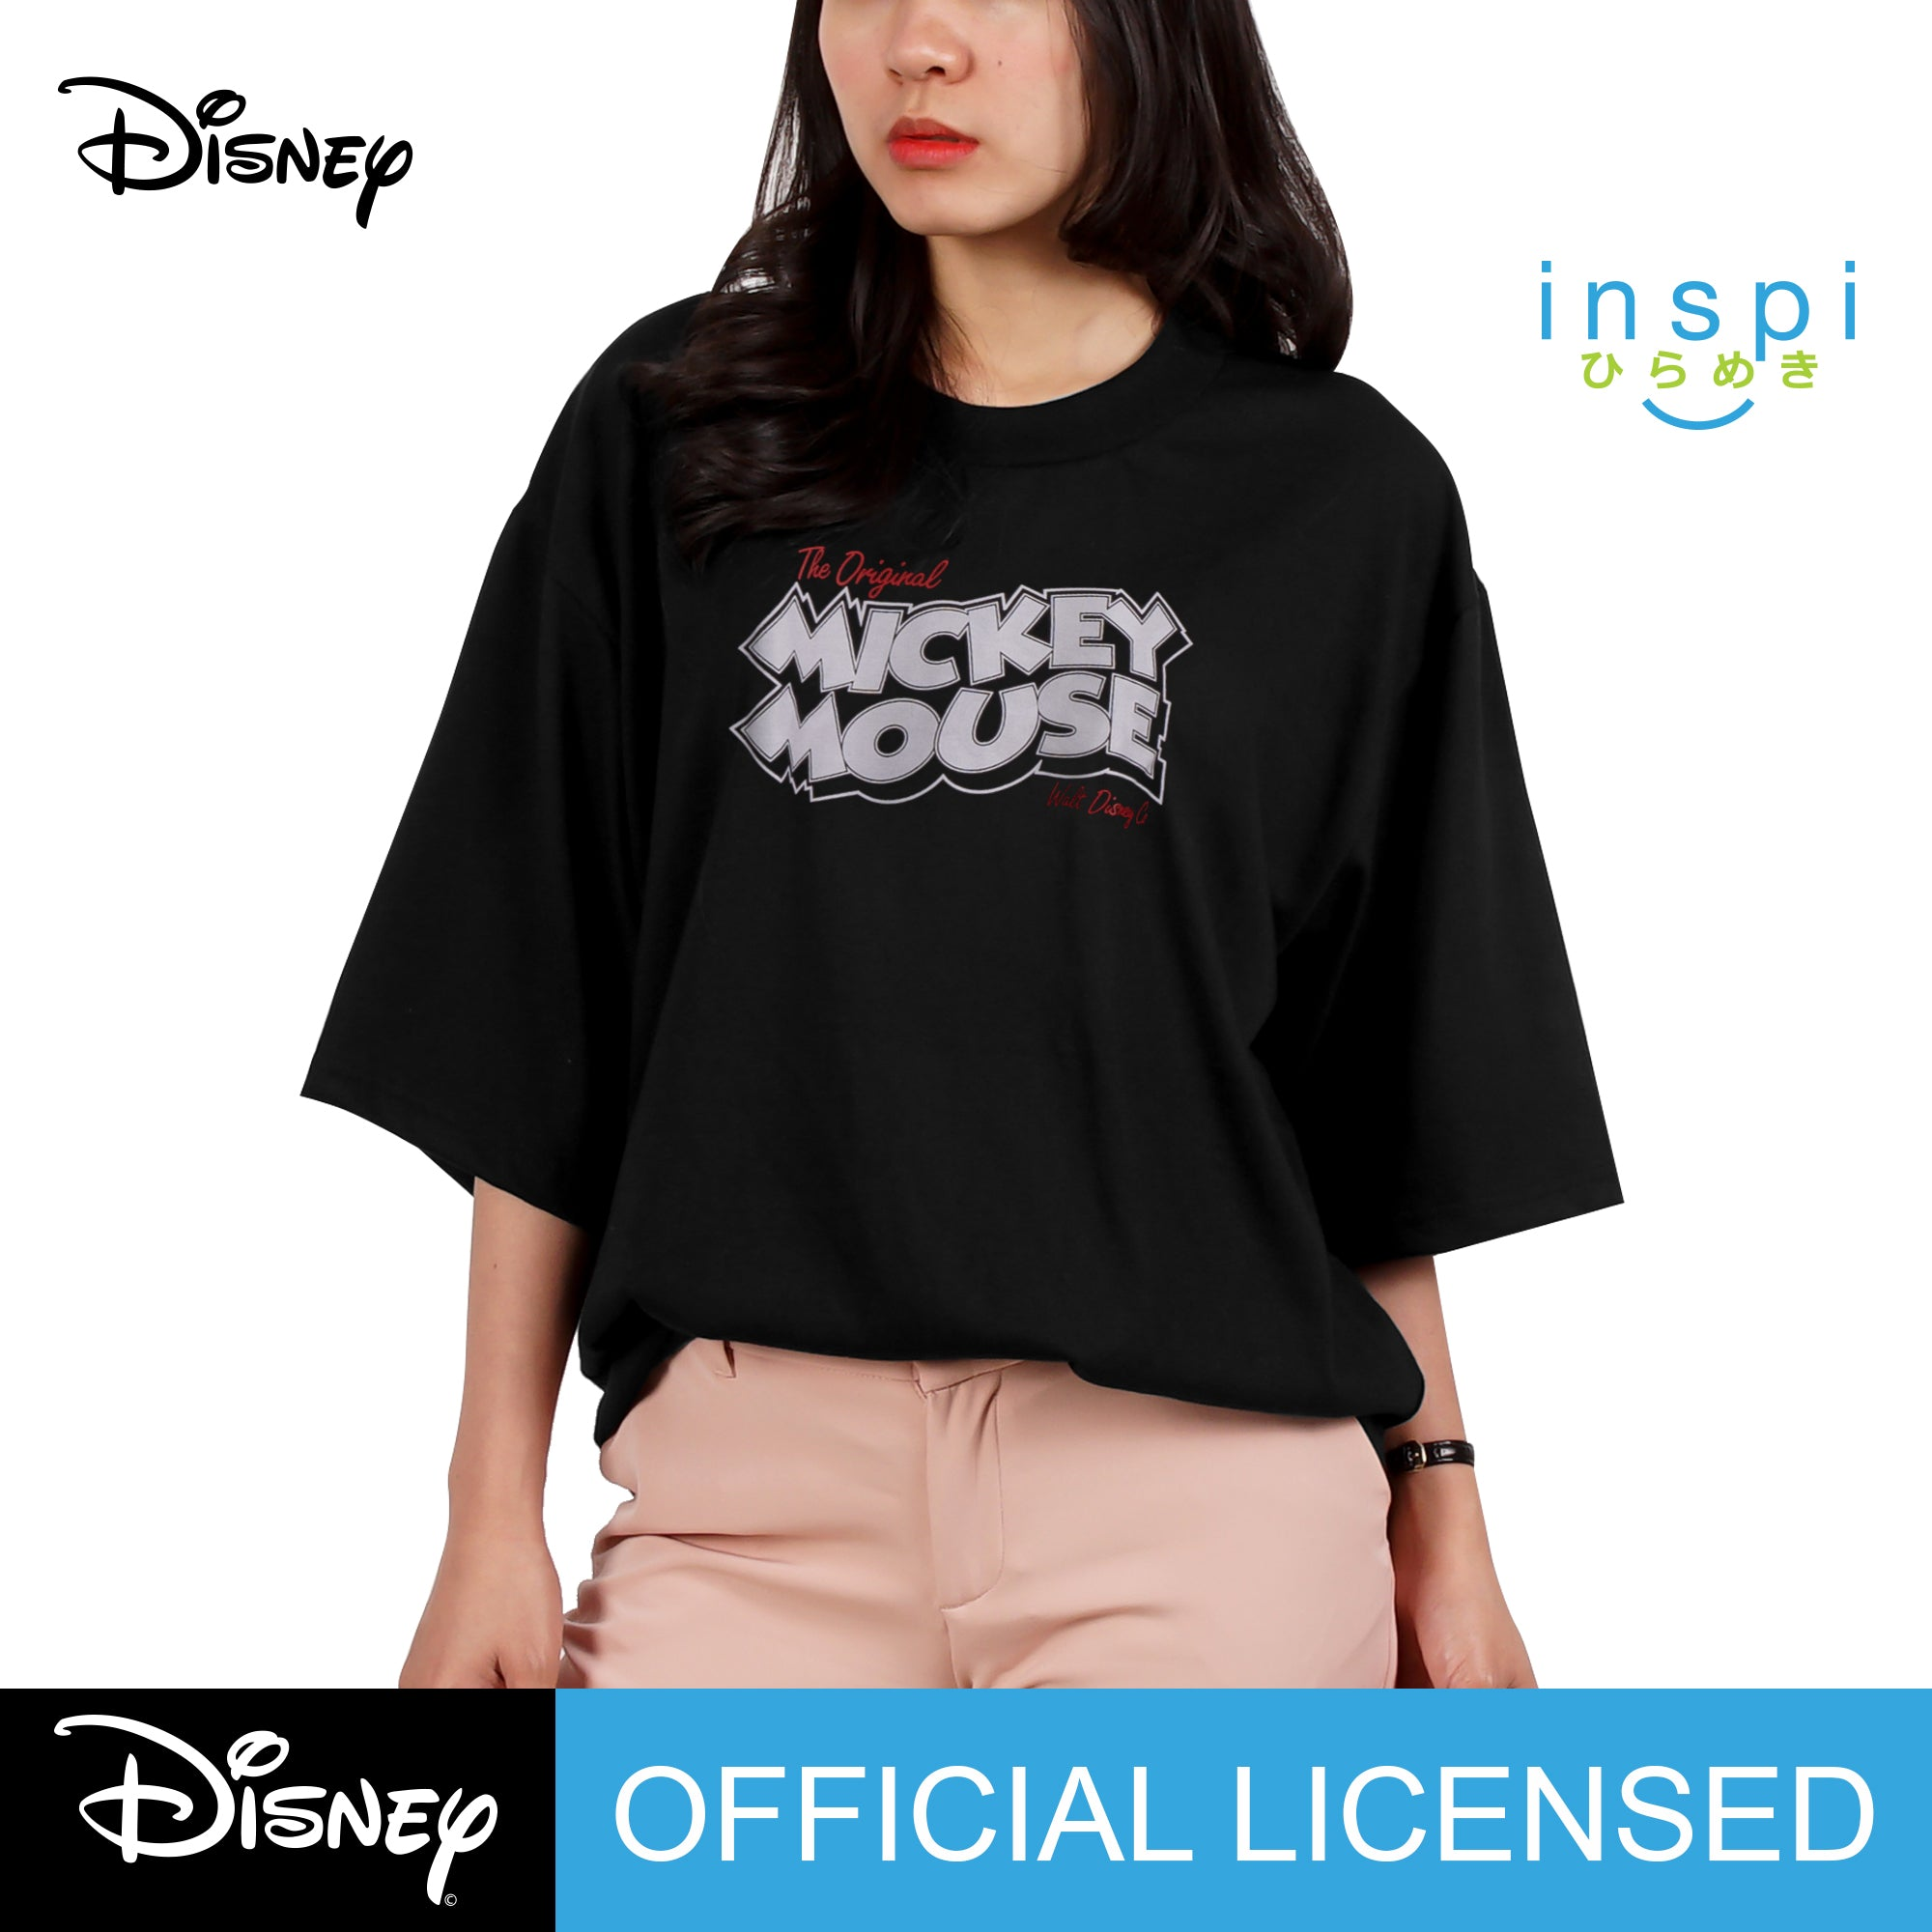 Disney Loose Fit Mickey Mouse Peace Graphic Korean Oversized Tshirt in Black Inspi Tee